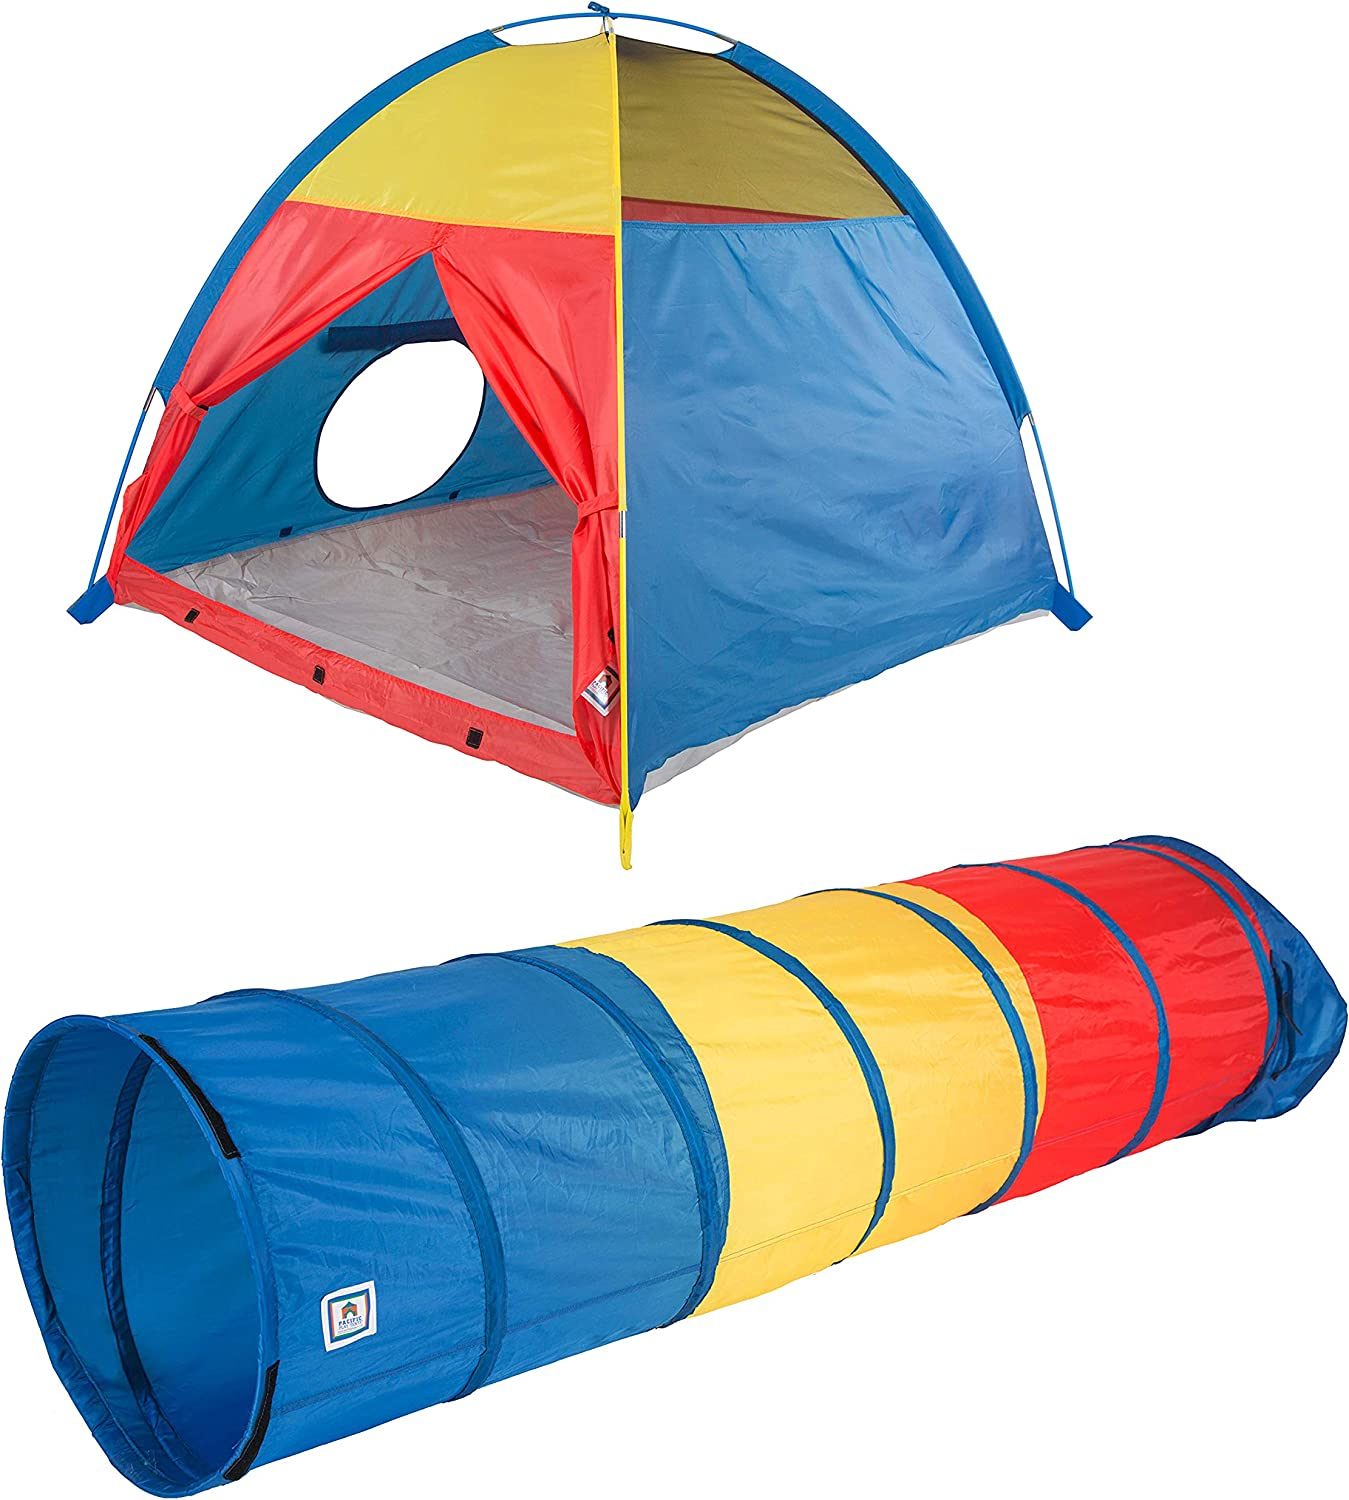 Pacific Play Tents Tri-Color Dome Tent and Tunnel